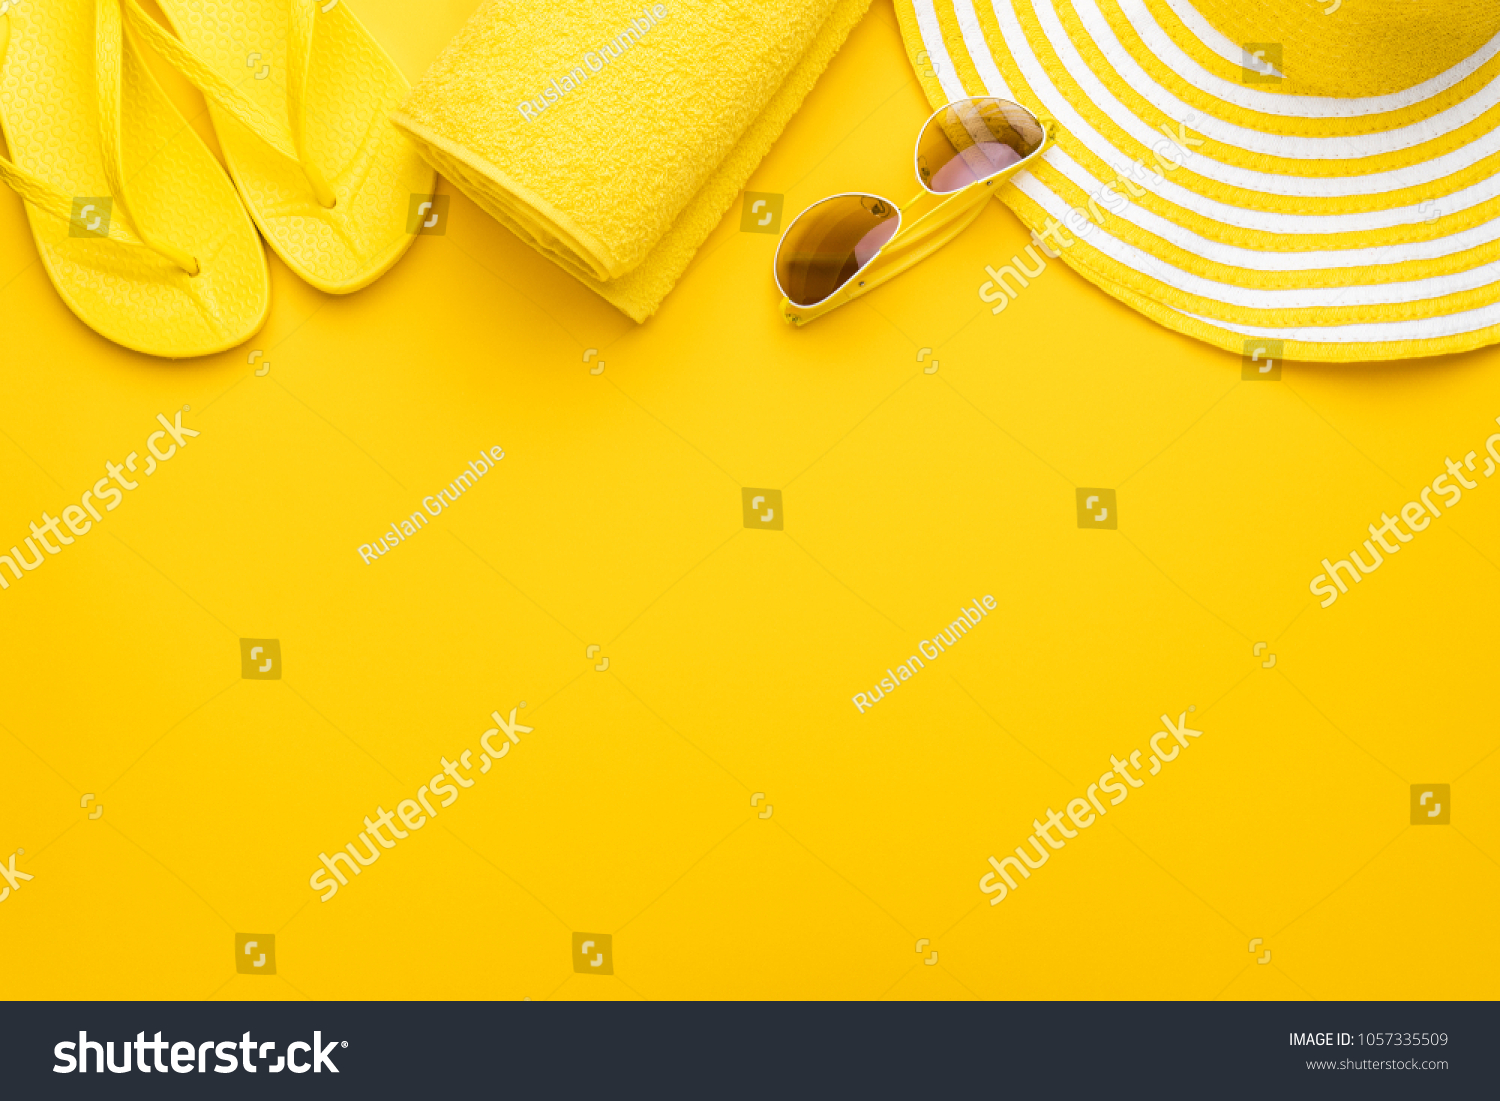 beach accessories on the yellow background - sunglasses, towel. flip-flops and striped hat. summer is coming concept #1057335509 - 123PhotoFree.com